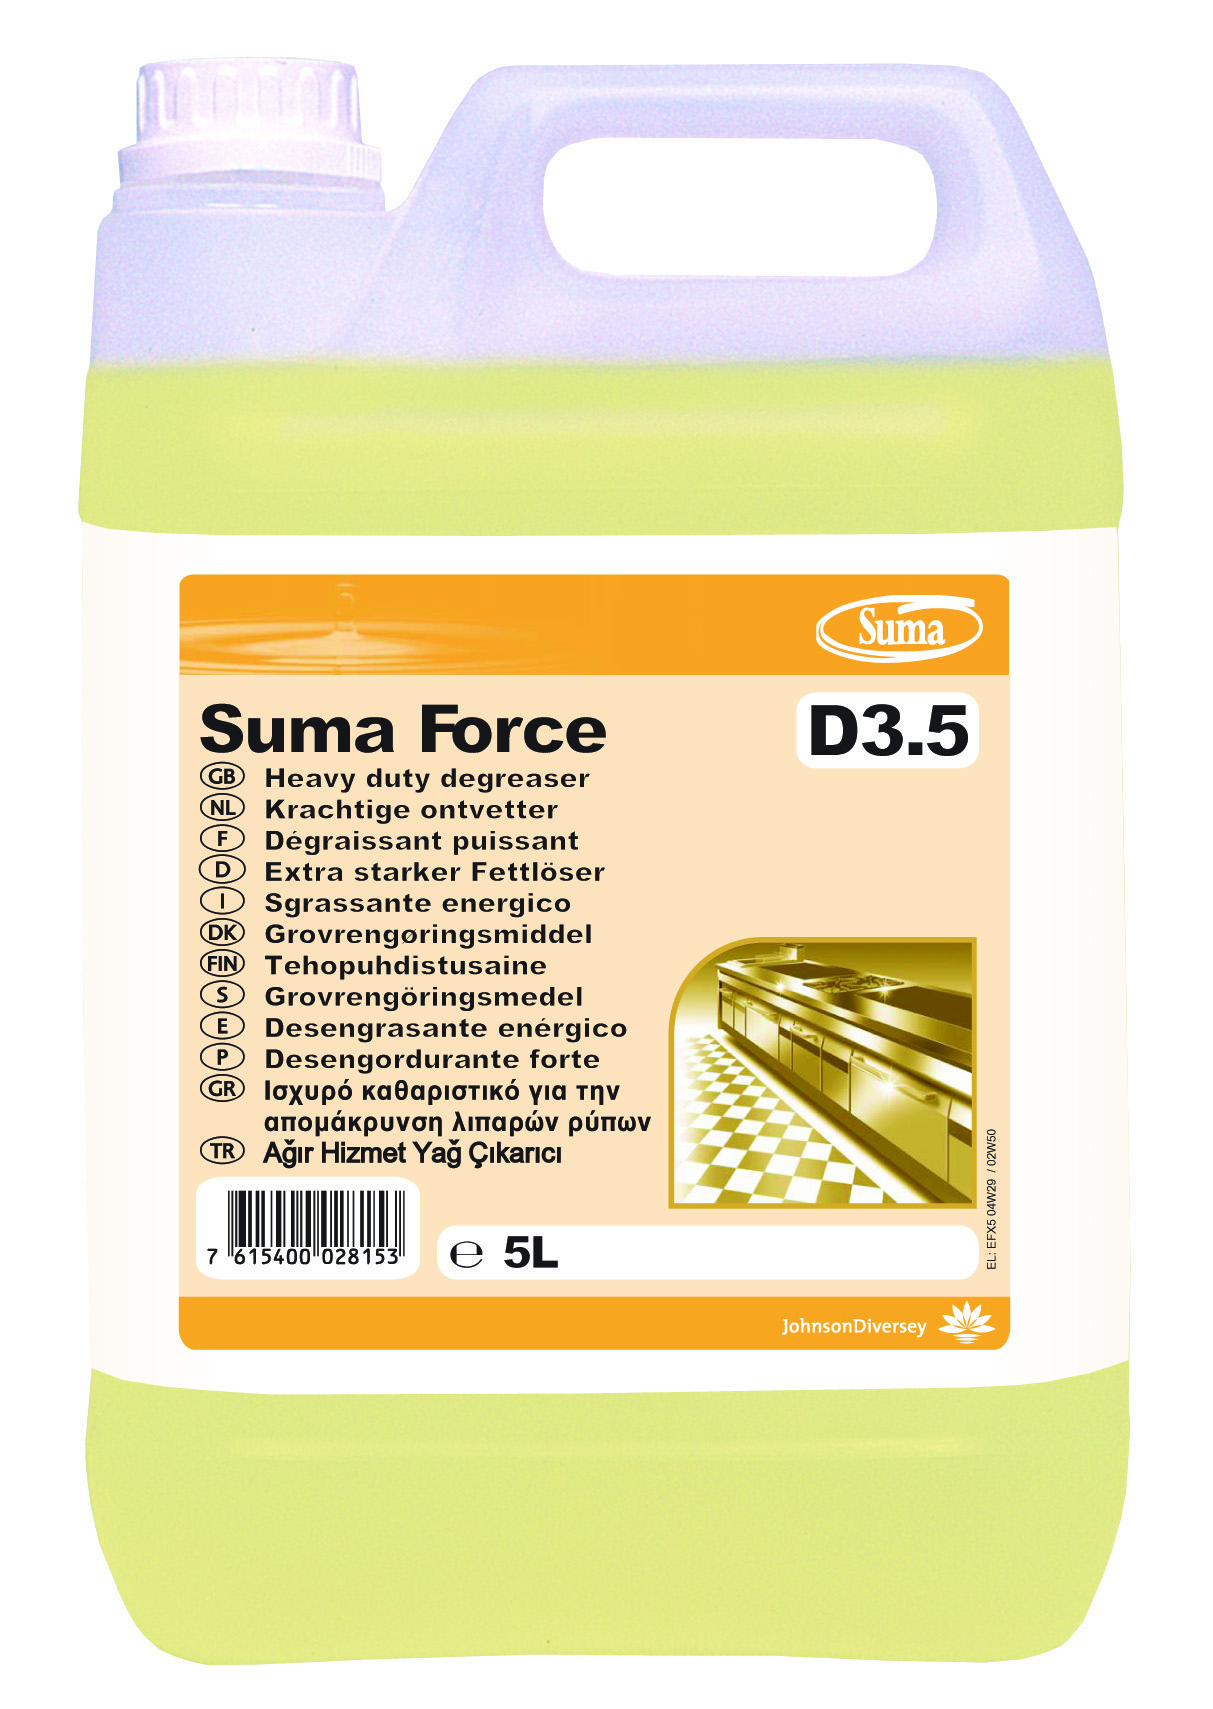 Suma Force D3.5 Degreaser - 2 x 5L